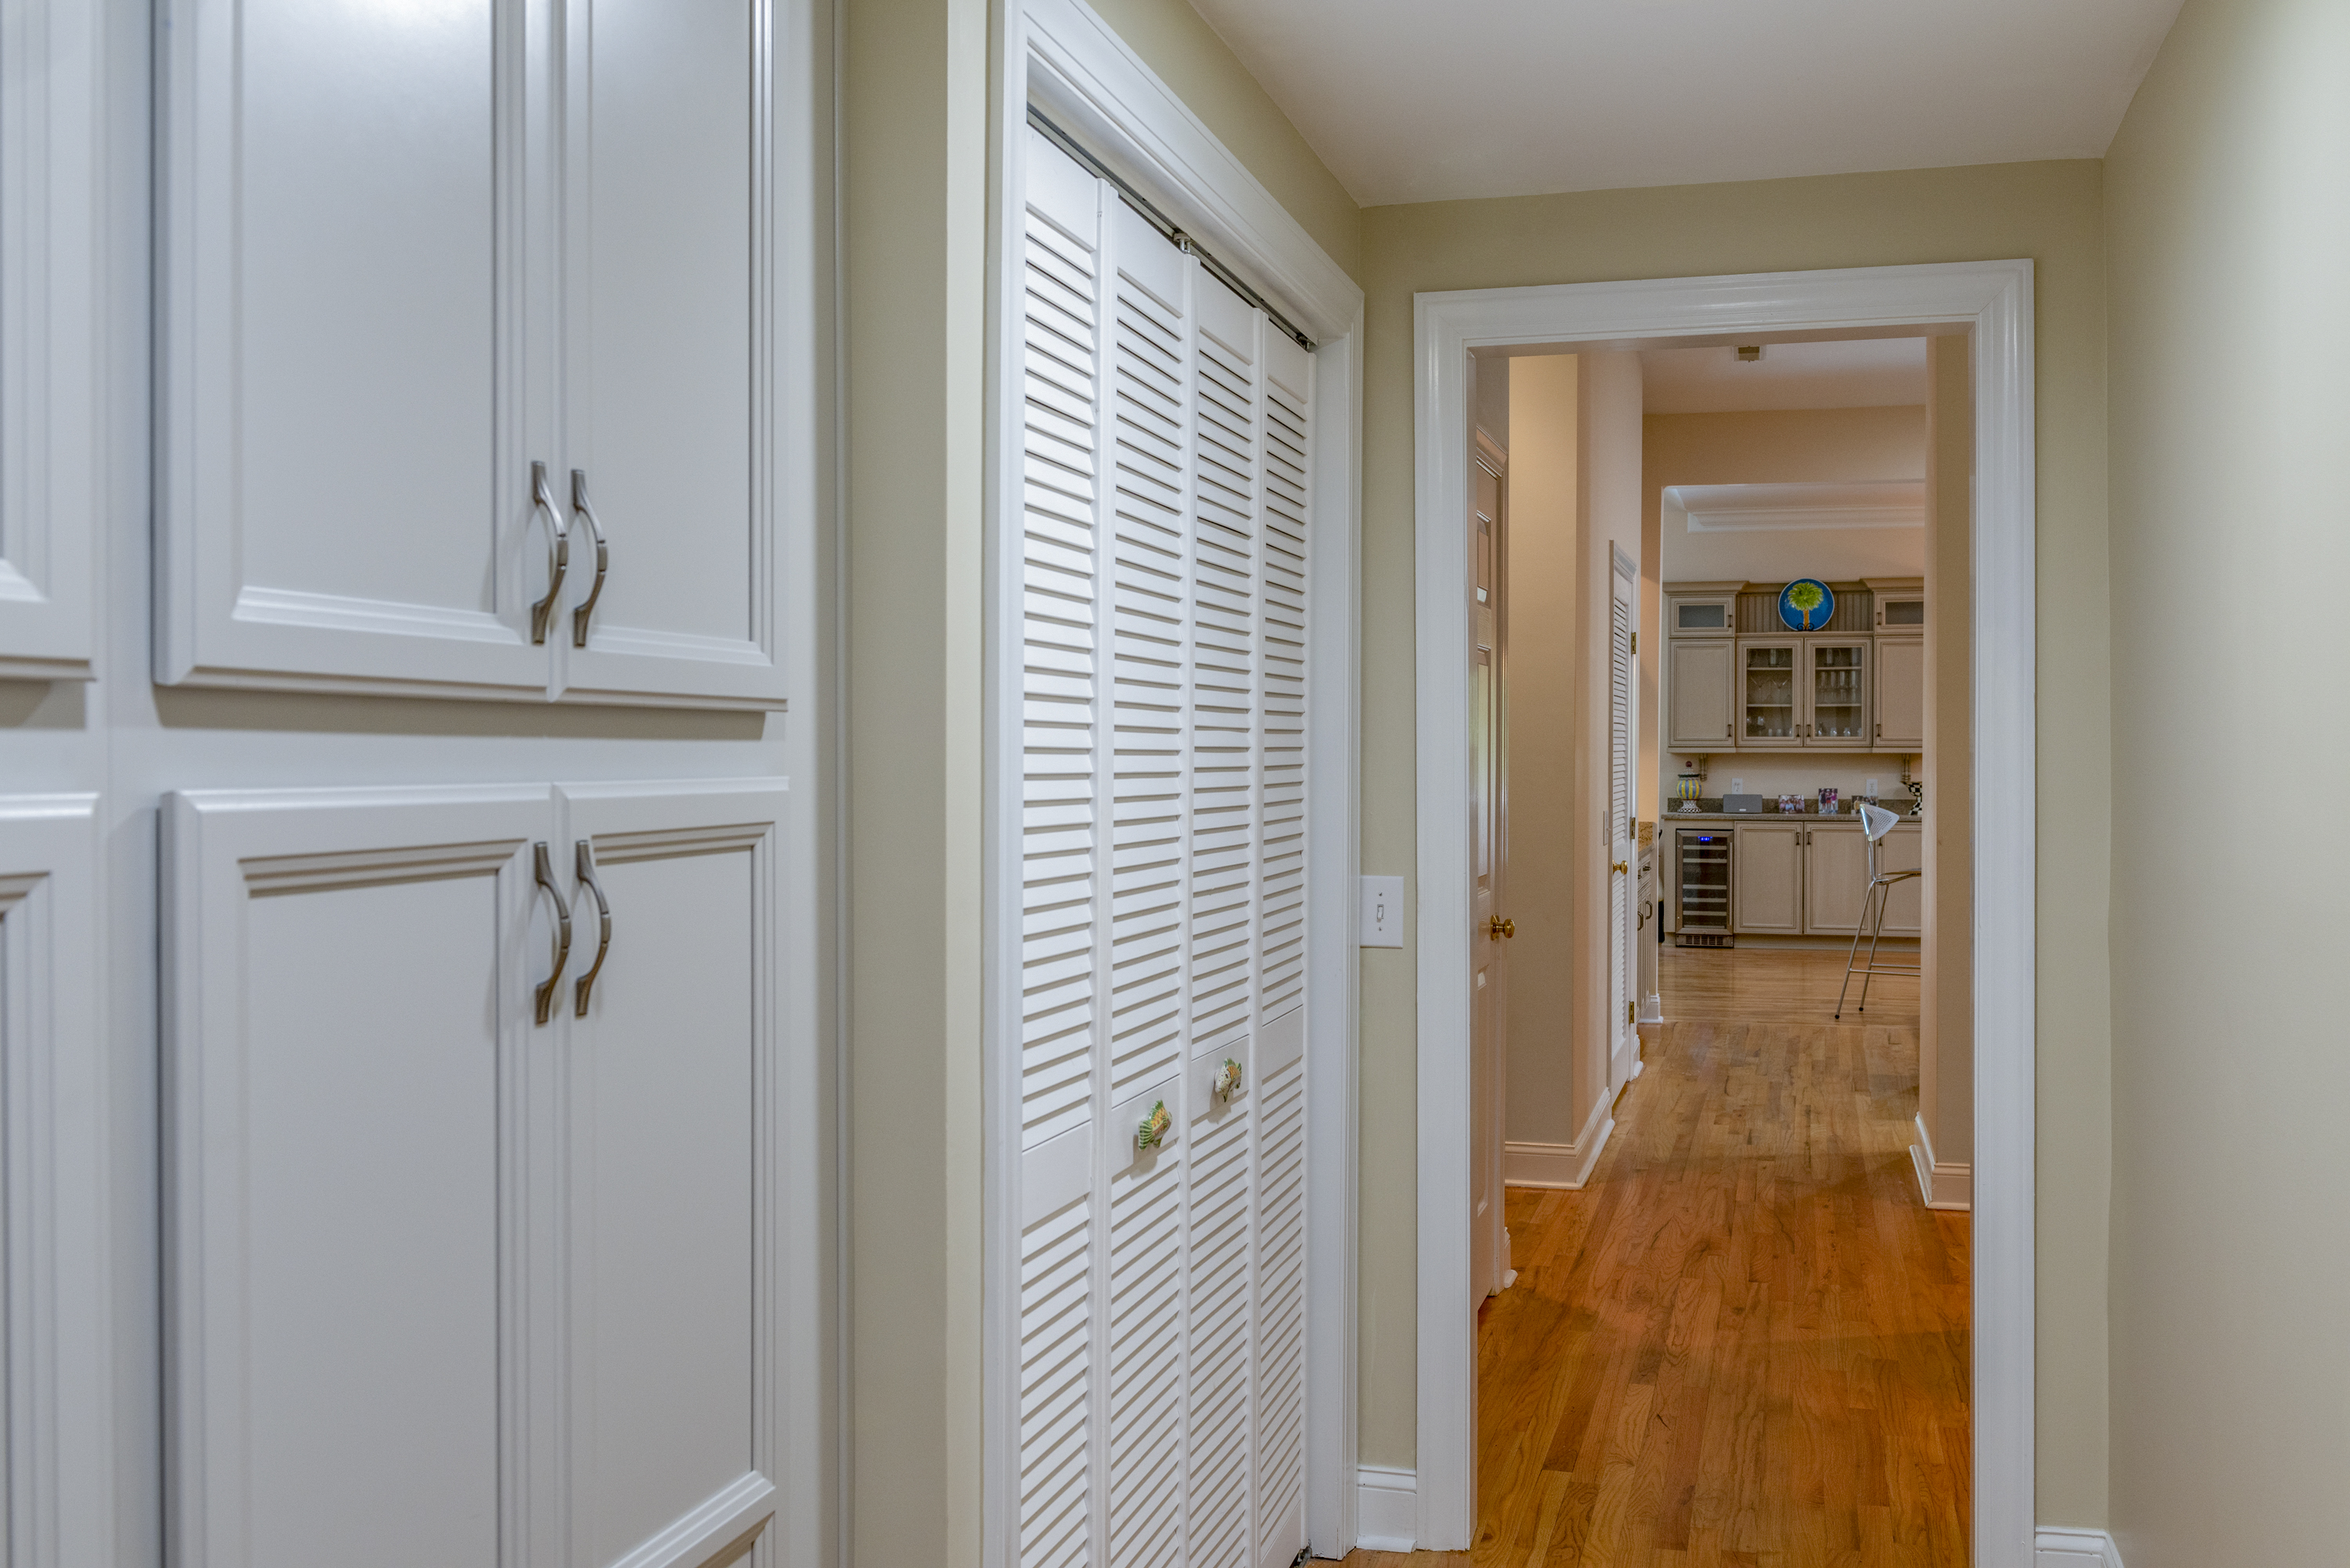 Hallway including full size washer & dryer behind bi-fold doors